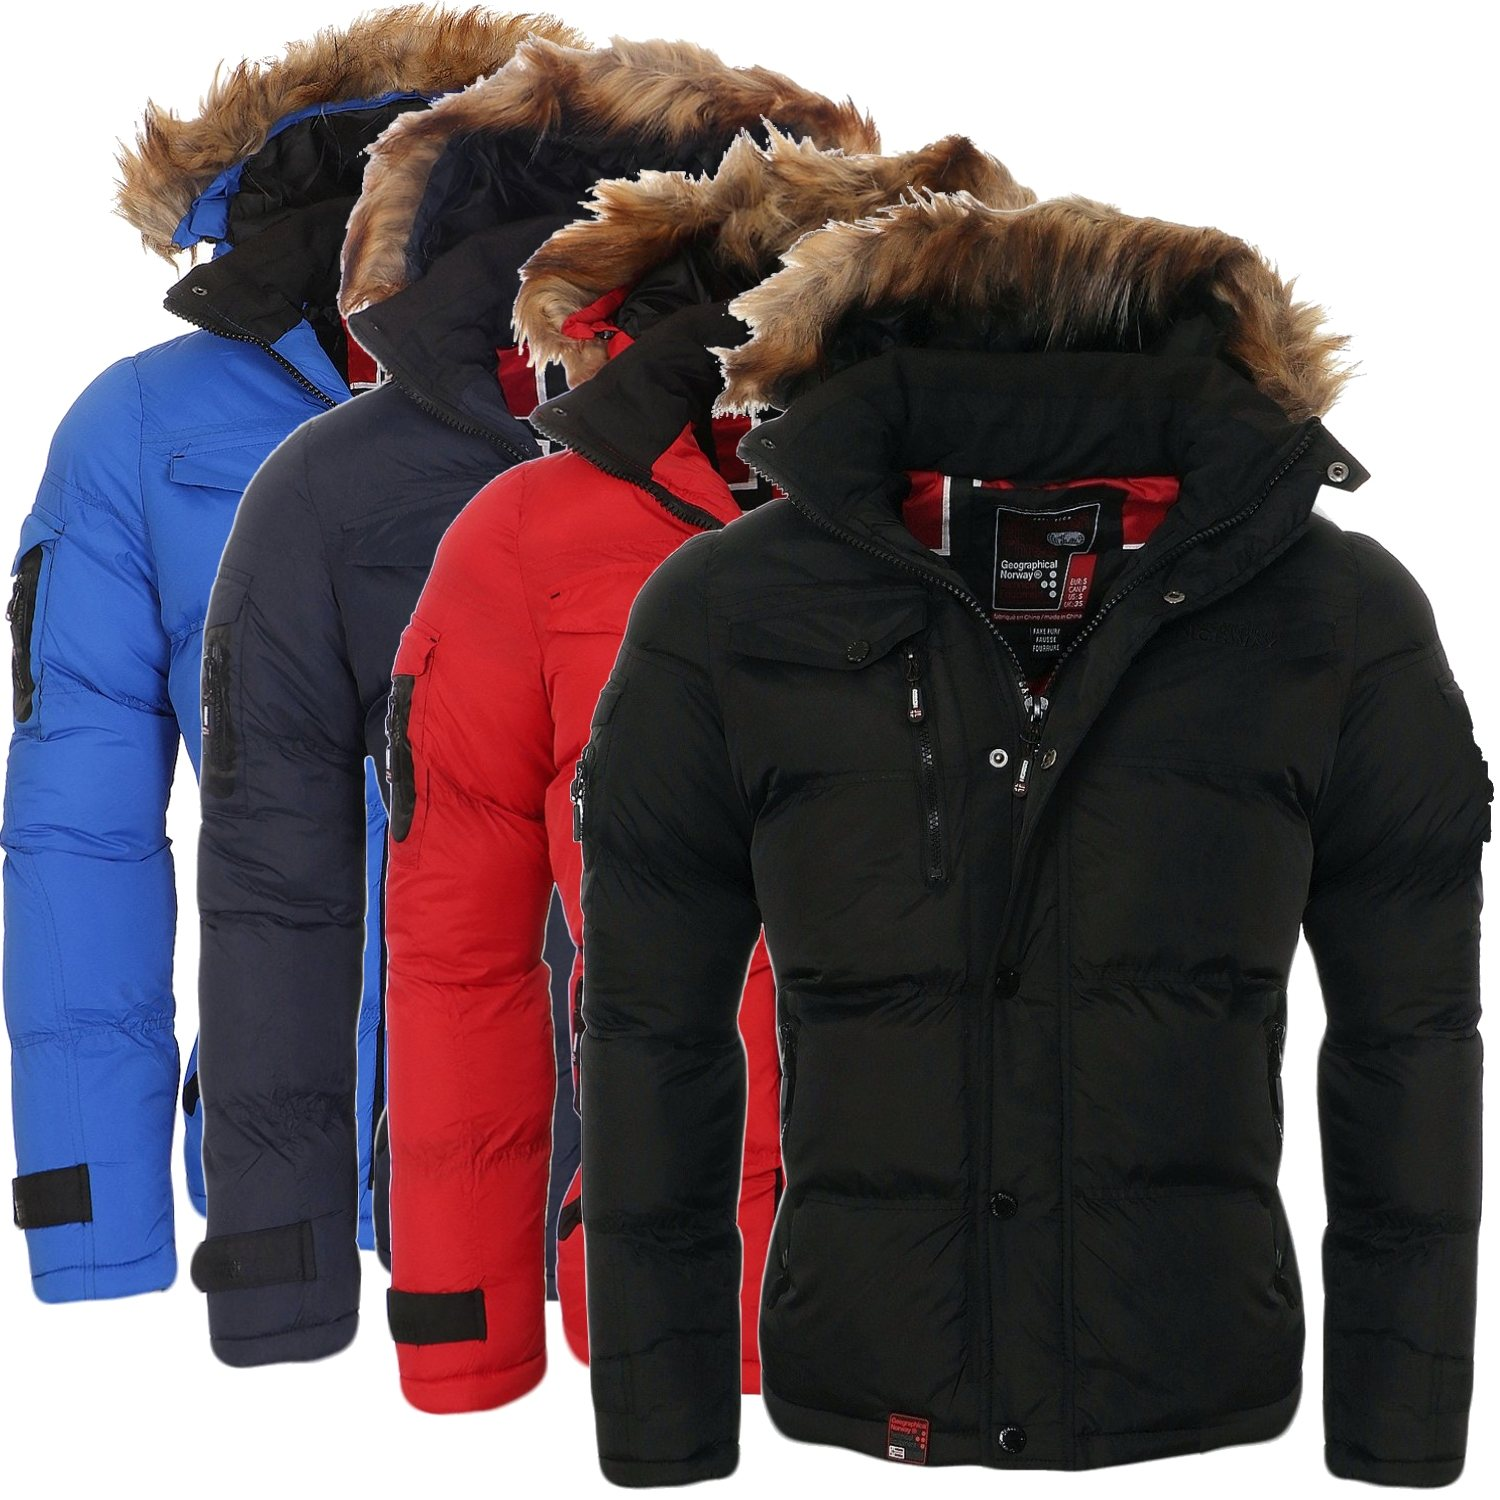 Geographical Norway Herren Winter Jacke Steppjacke S M L XL XXL Winterjacke